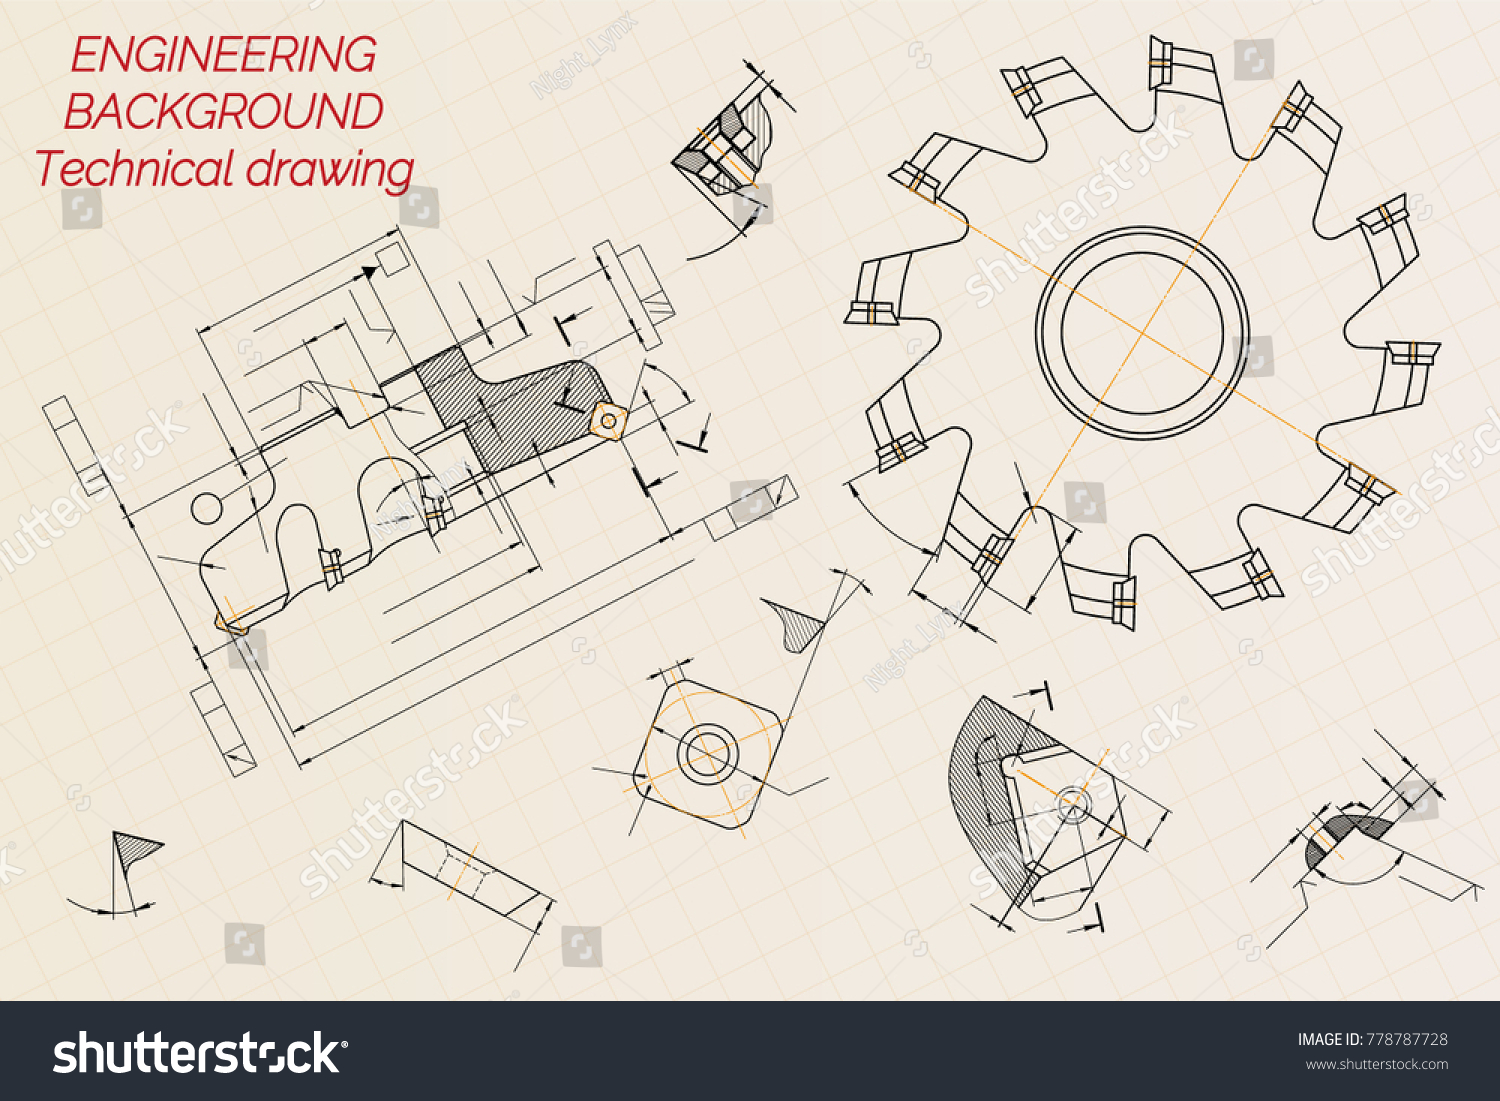 Mechanical engineering drawings on beige technical stock vector mechanical engineering drawings on beige technical paper background cutting tools milling cutter industrial malvernweather Image collections